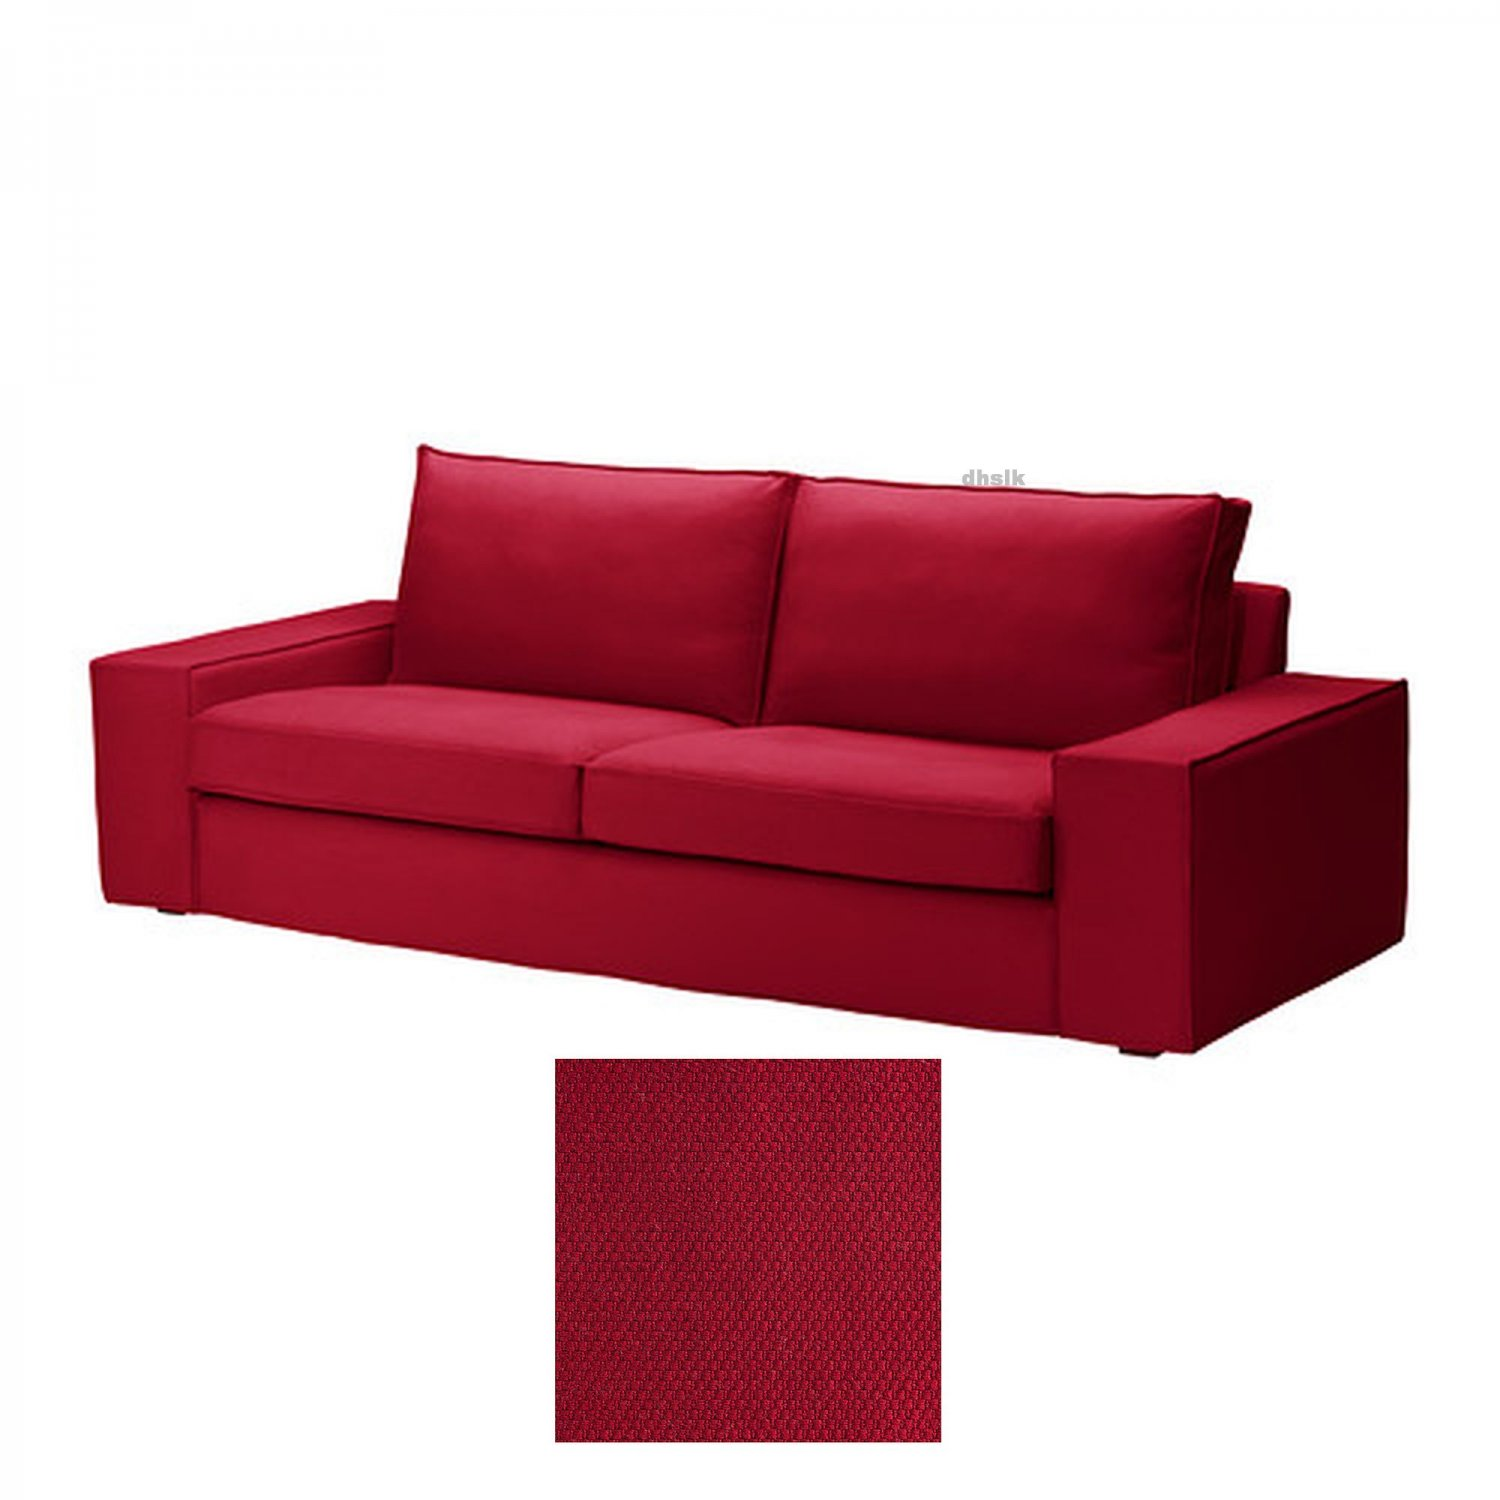 IKEA KIVIK 3 Seat Sofa SLIPCOVER Cover DANSBO MEDIUM RED